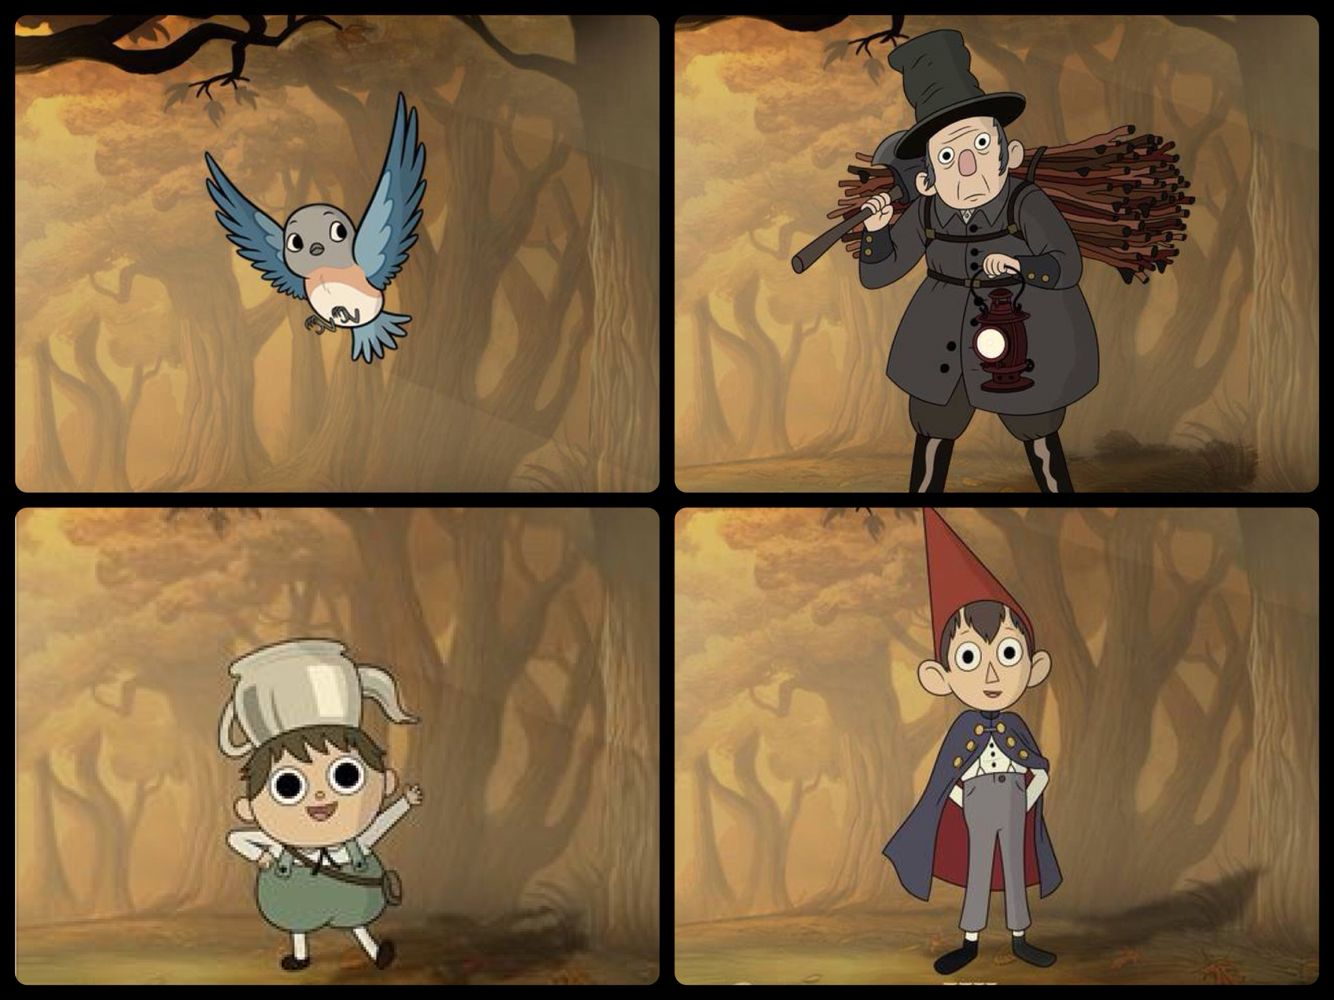 Beatrice, The Woodsman, Greg, and Wirt